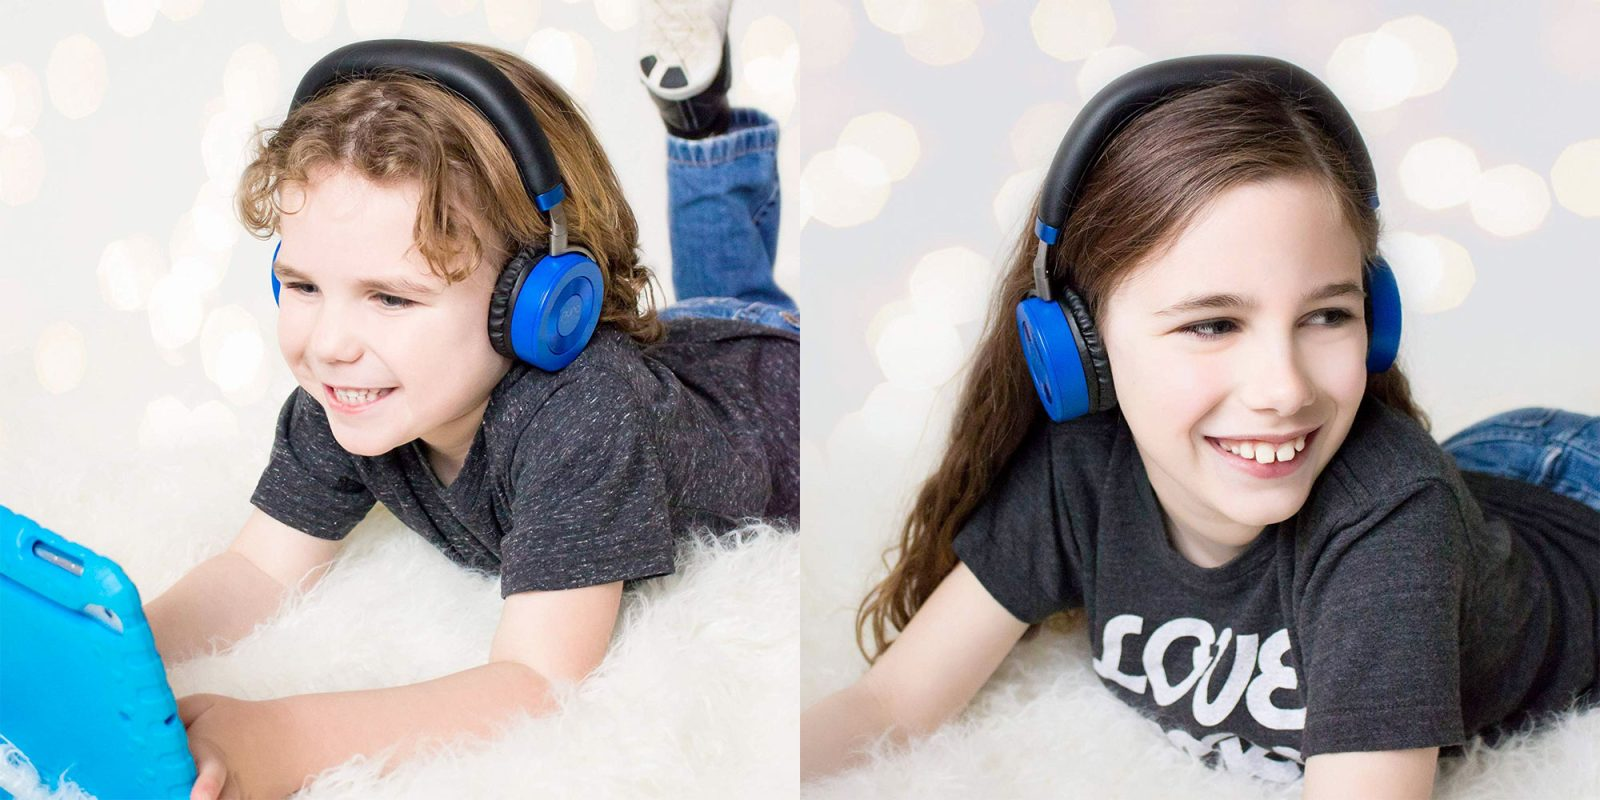 JuniorJams are volume-limited Bluetooth headphones designed for kids